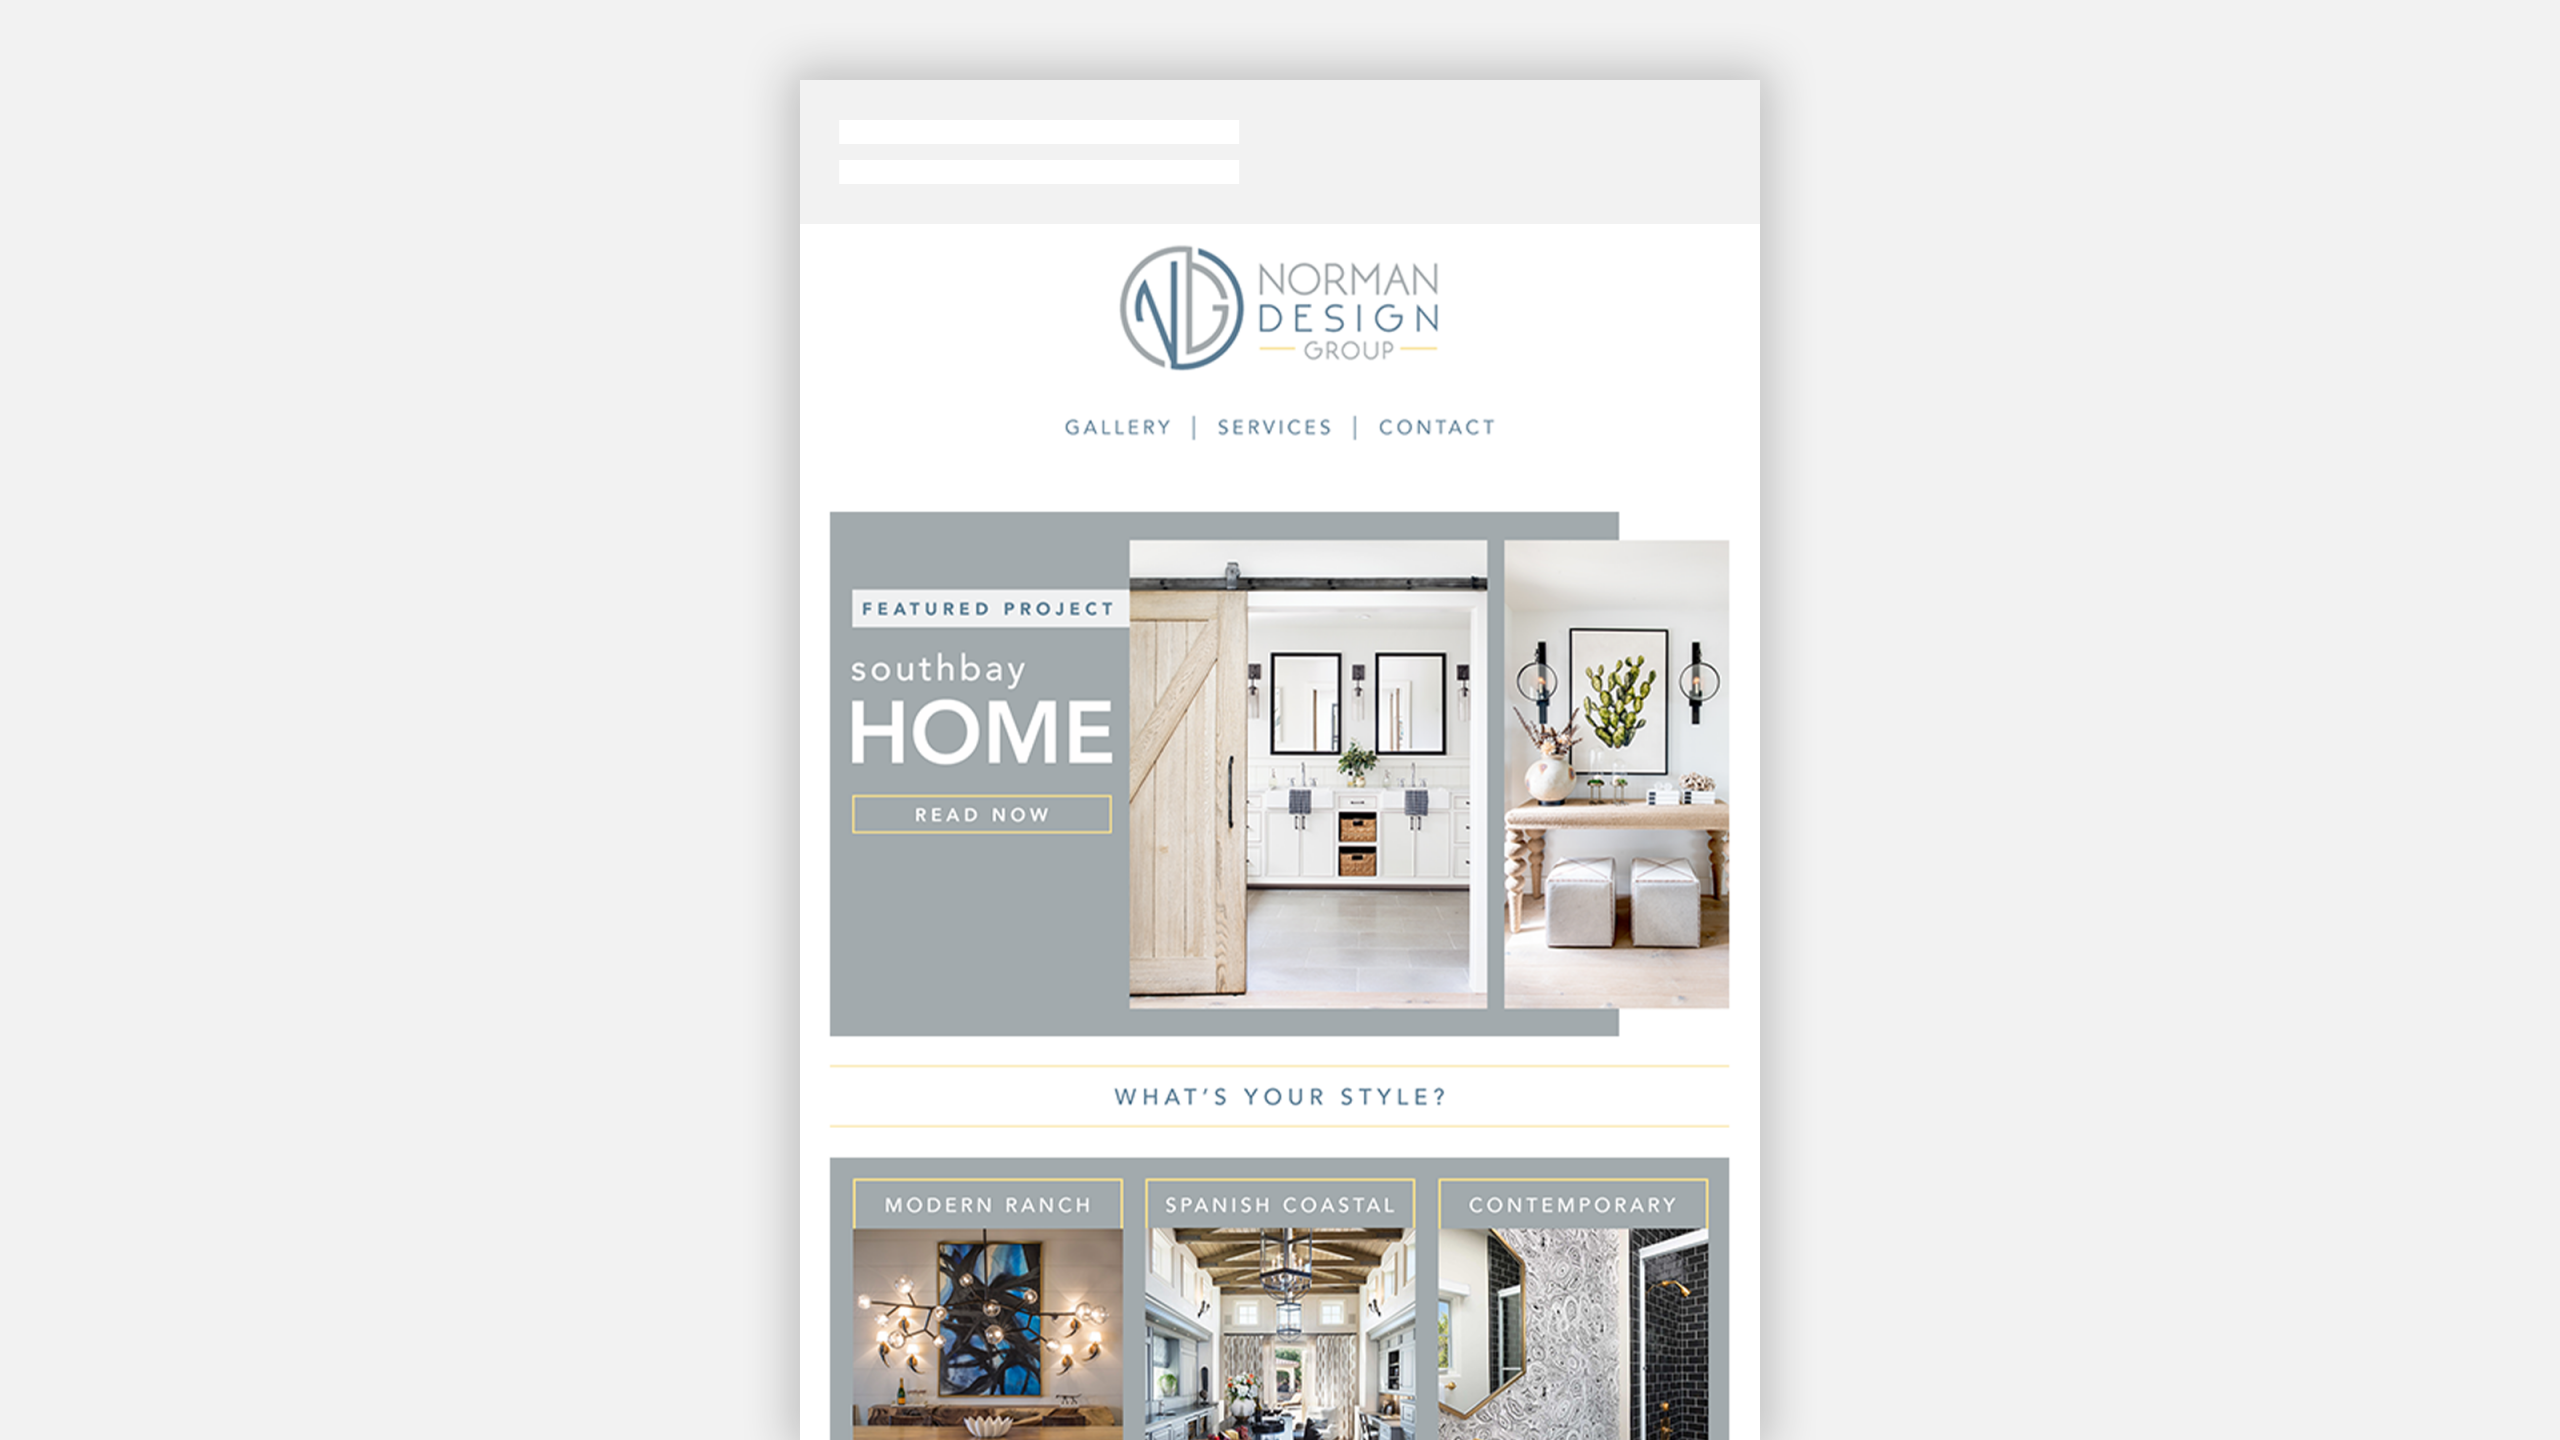 Norman Design Group Email